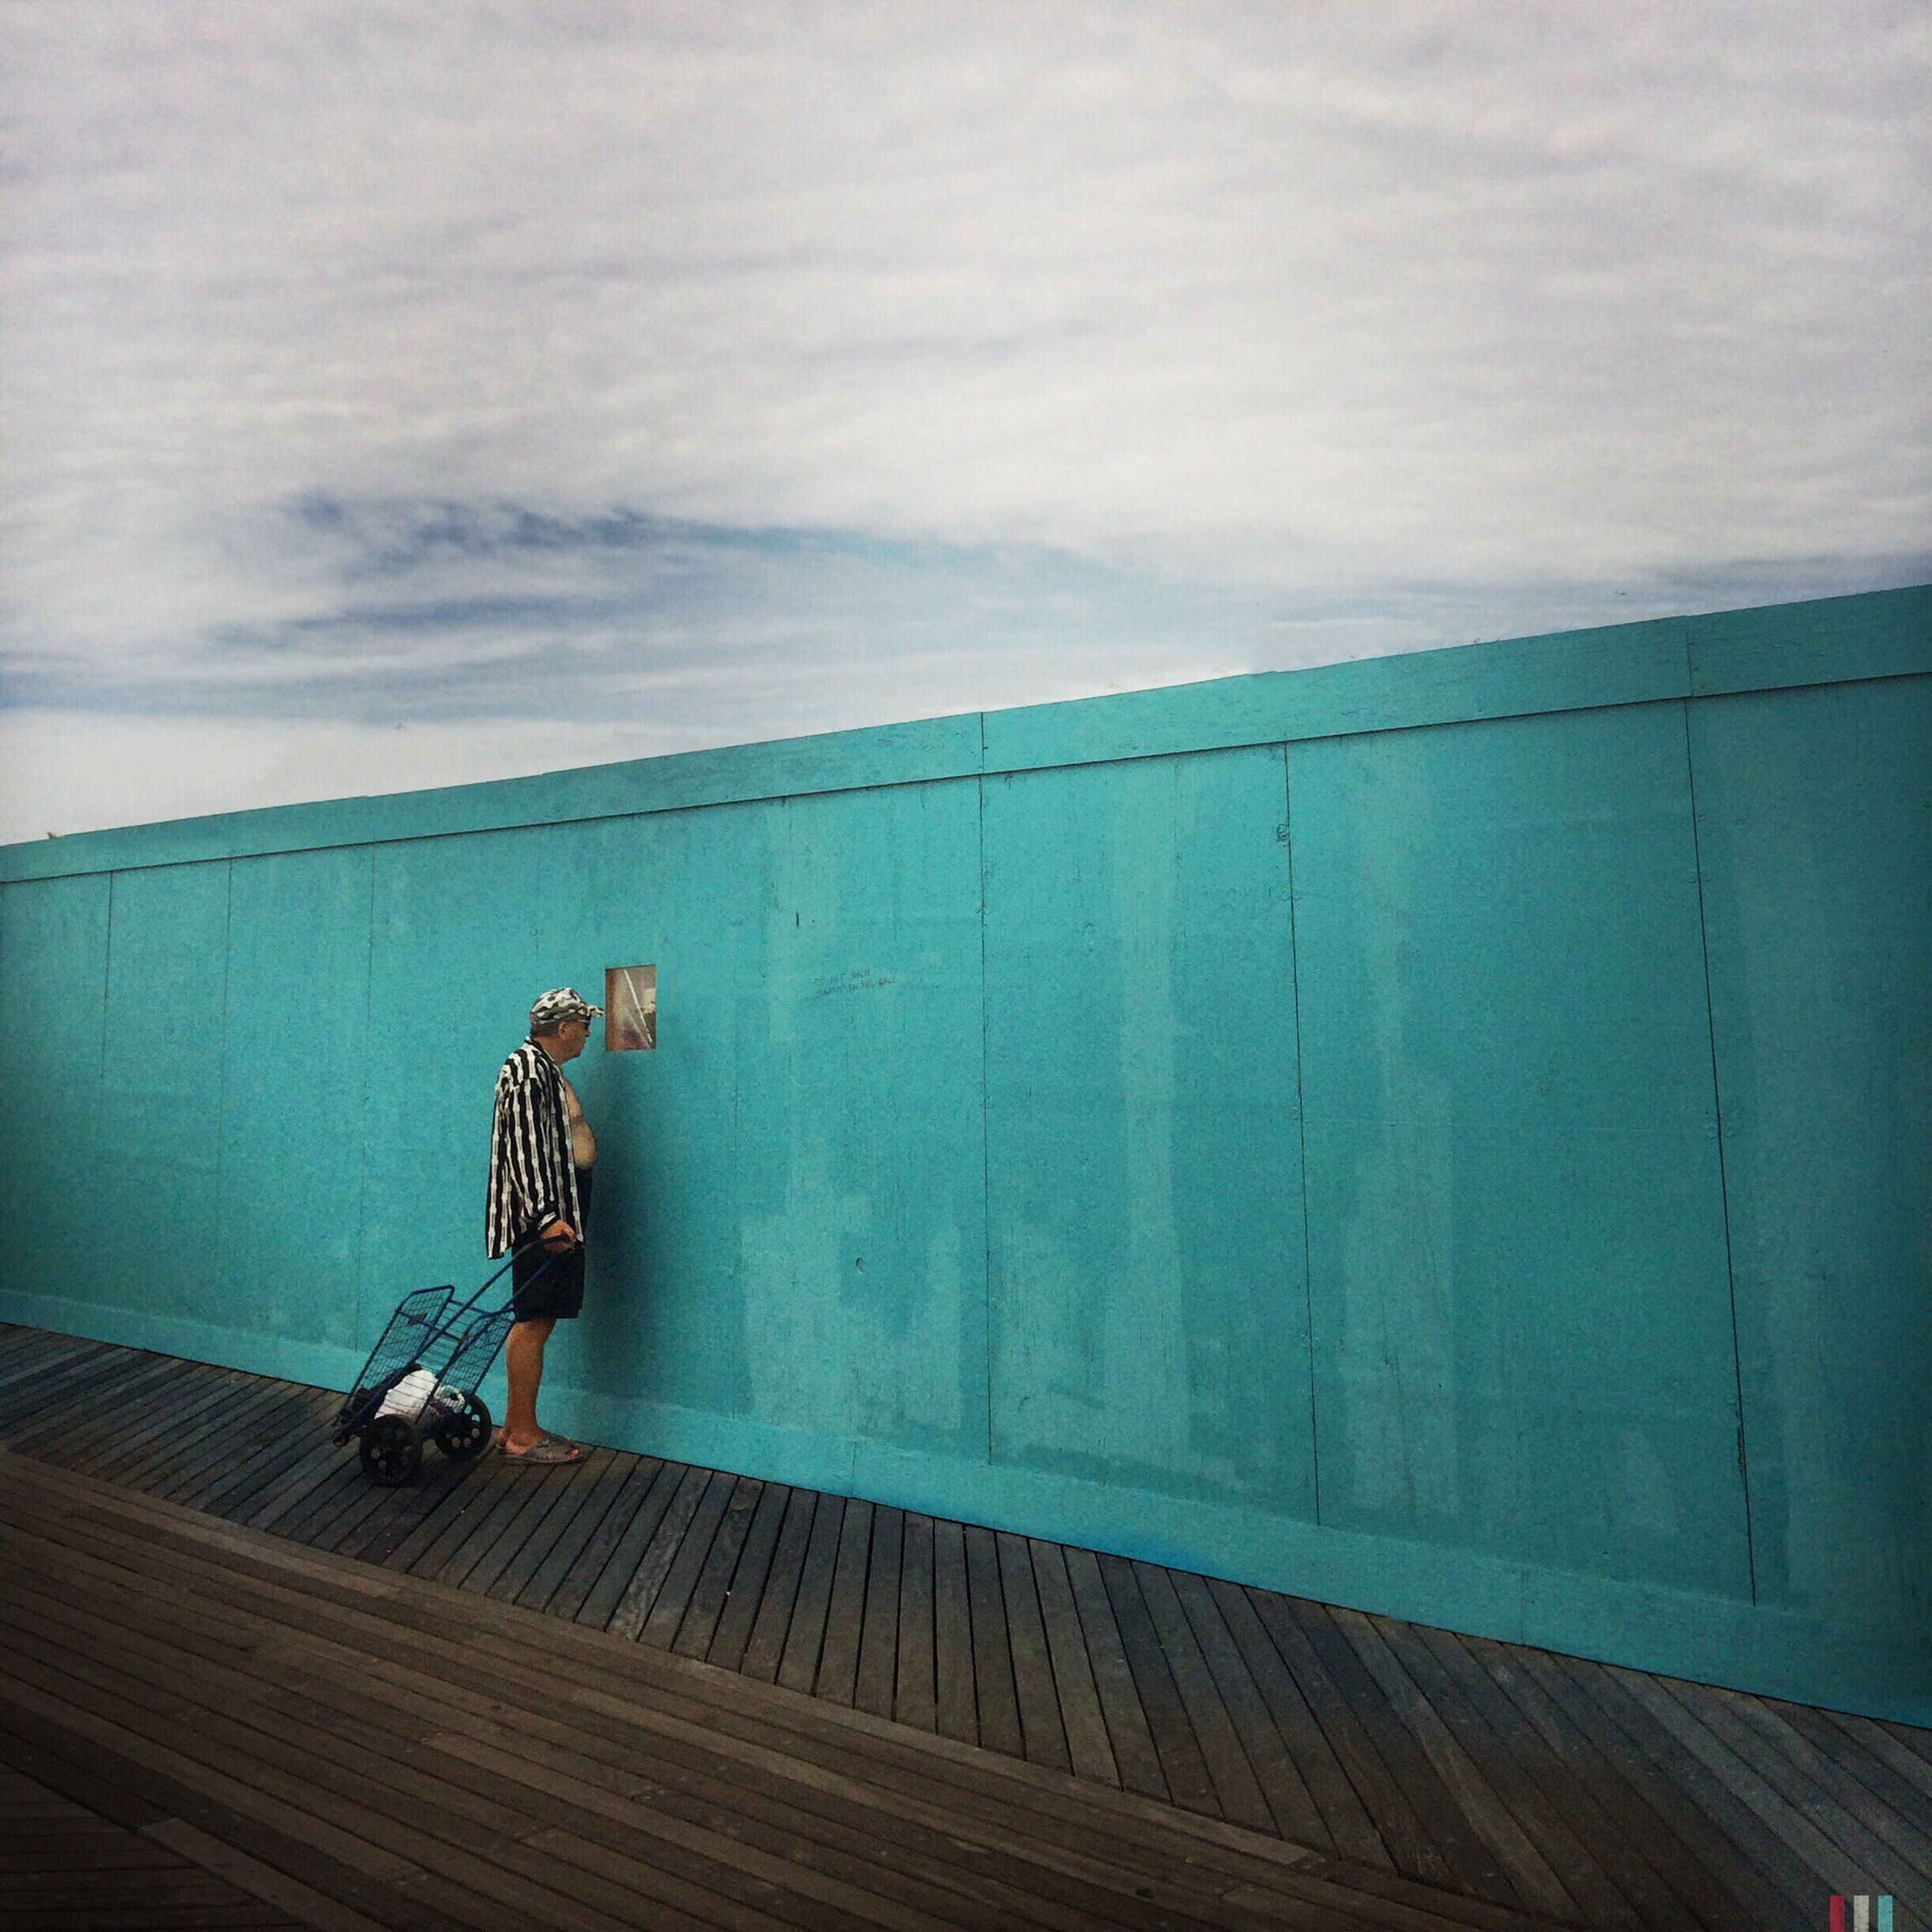 sky, cloud - sky, men, sea, built structure, lifestyles, architecture, horizon over water, full length, leisure activity, building exterior, cloud, cloudy, bicycle, transportation, rear view, water, person